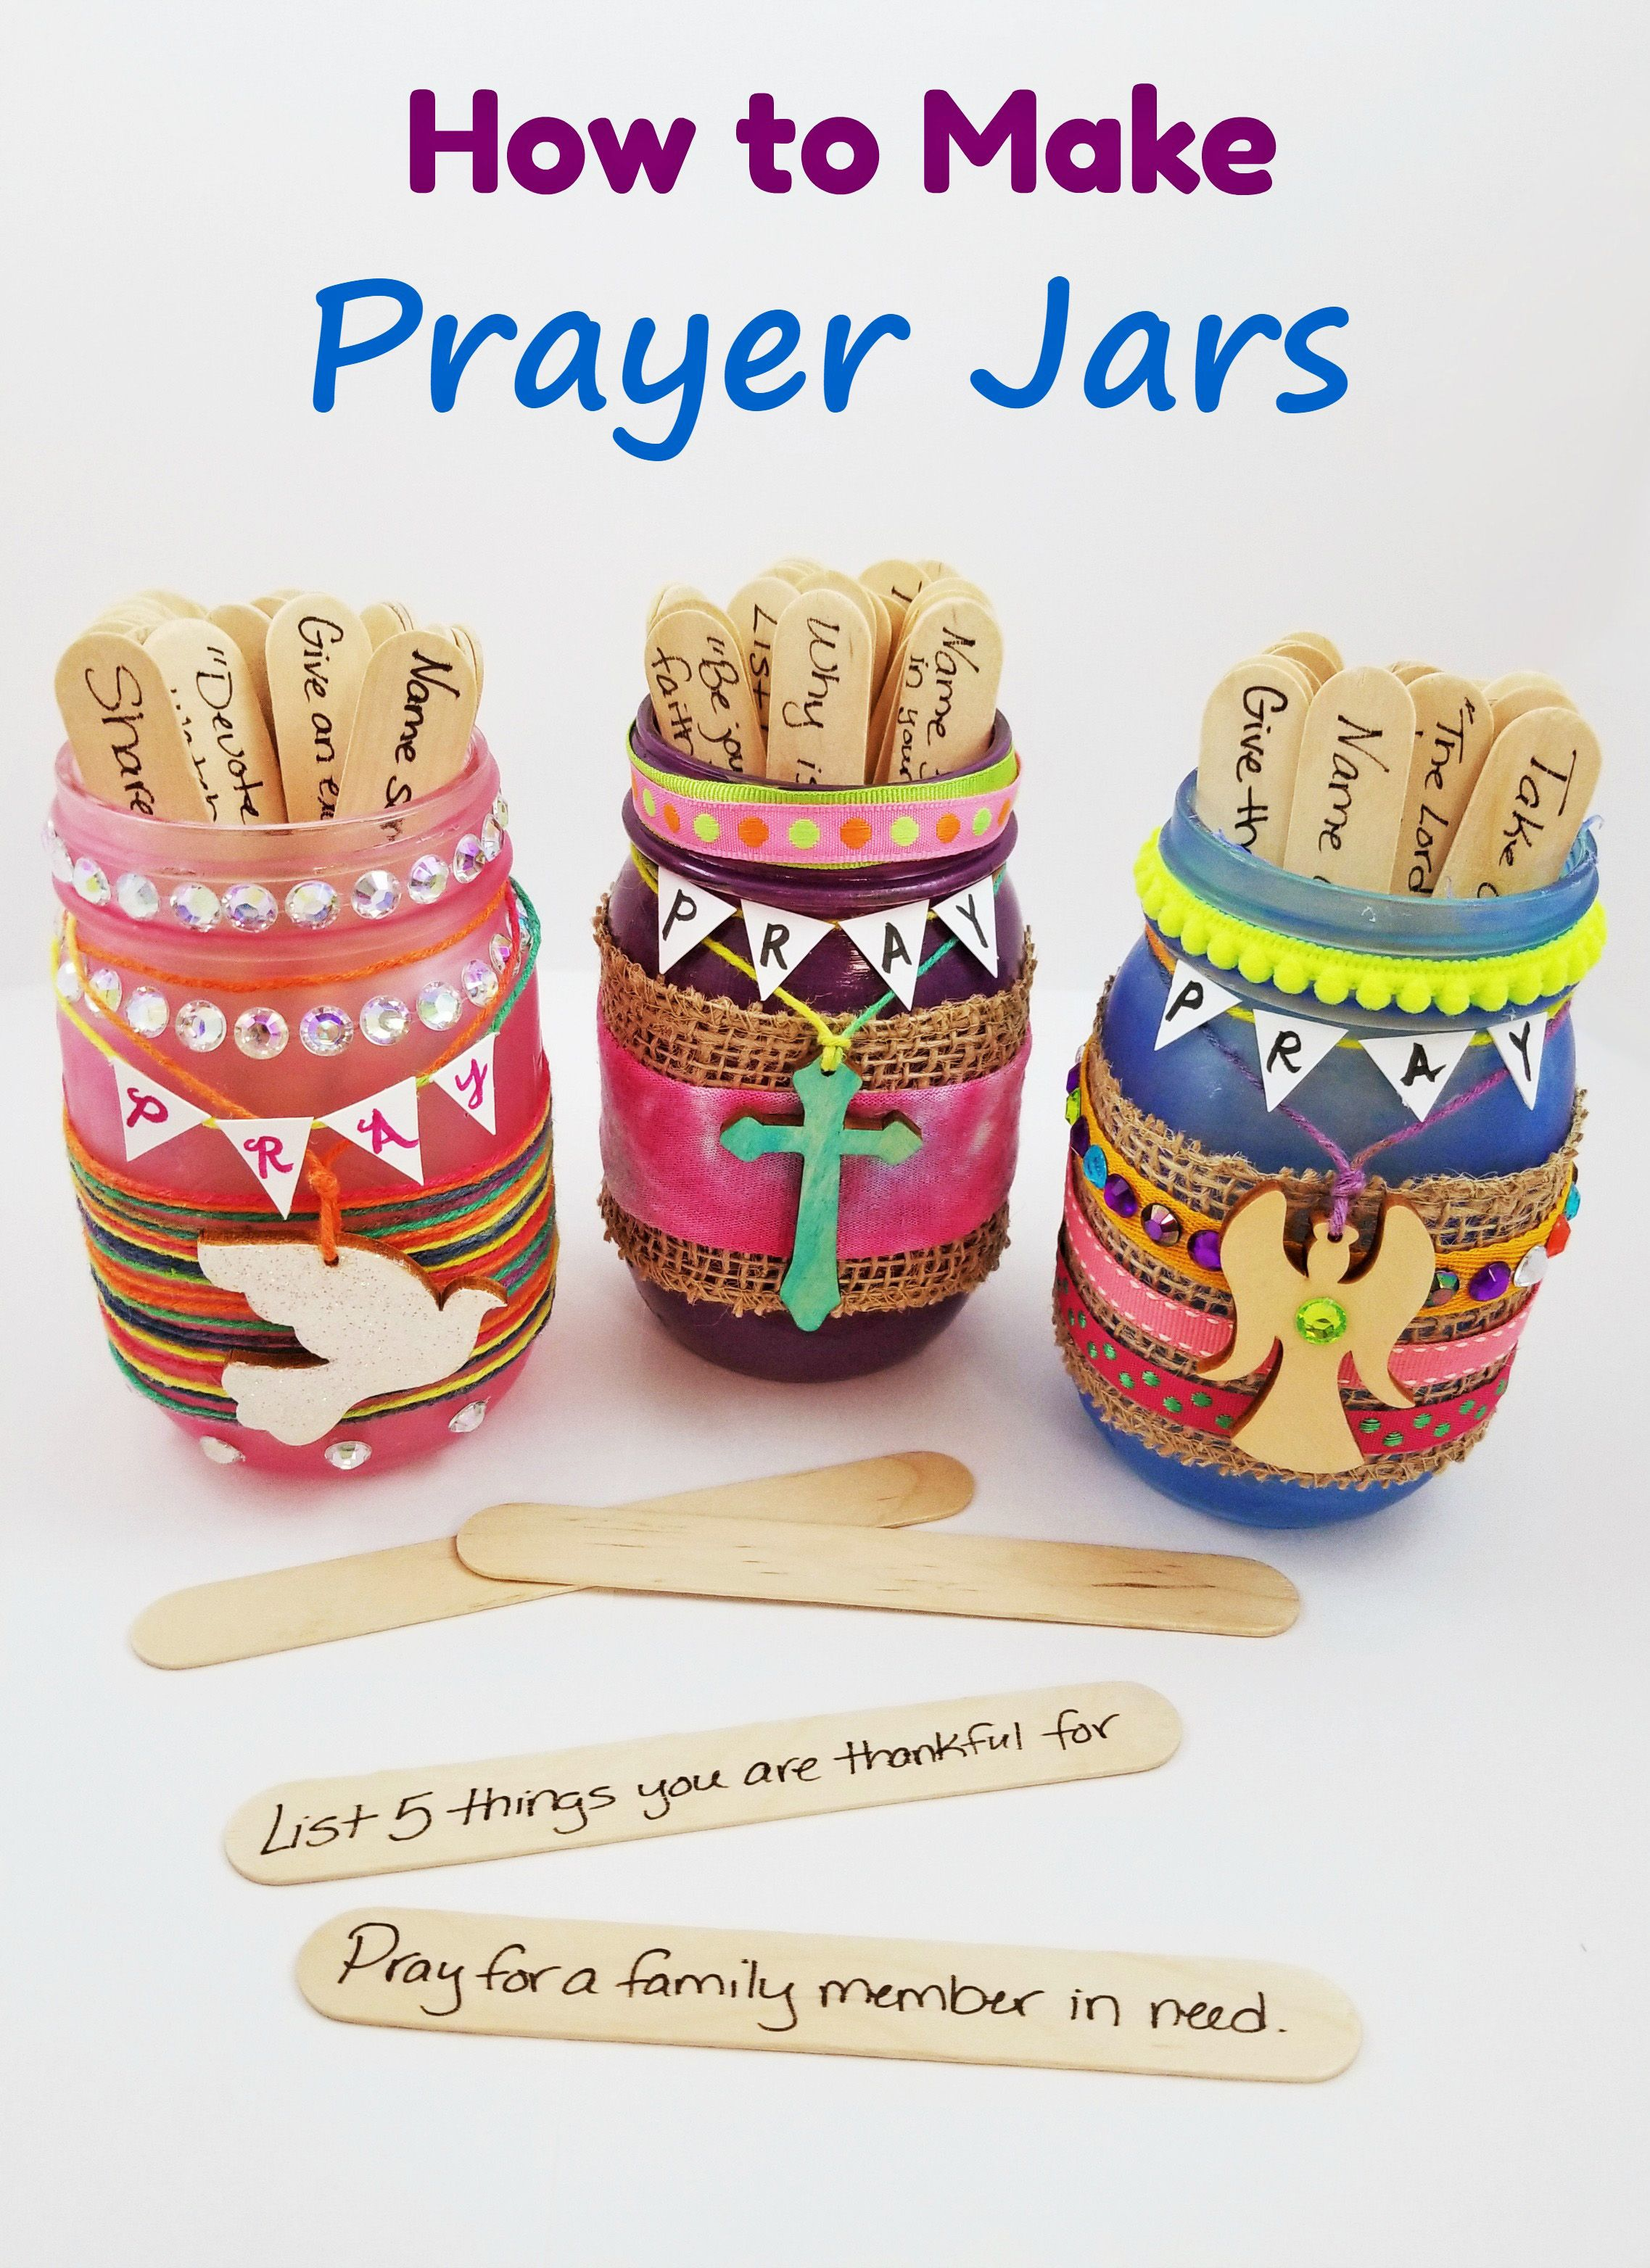 How to Make Prayer Jars - Religious Craft Activity & Lesson - S&S Blog